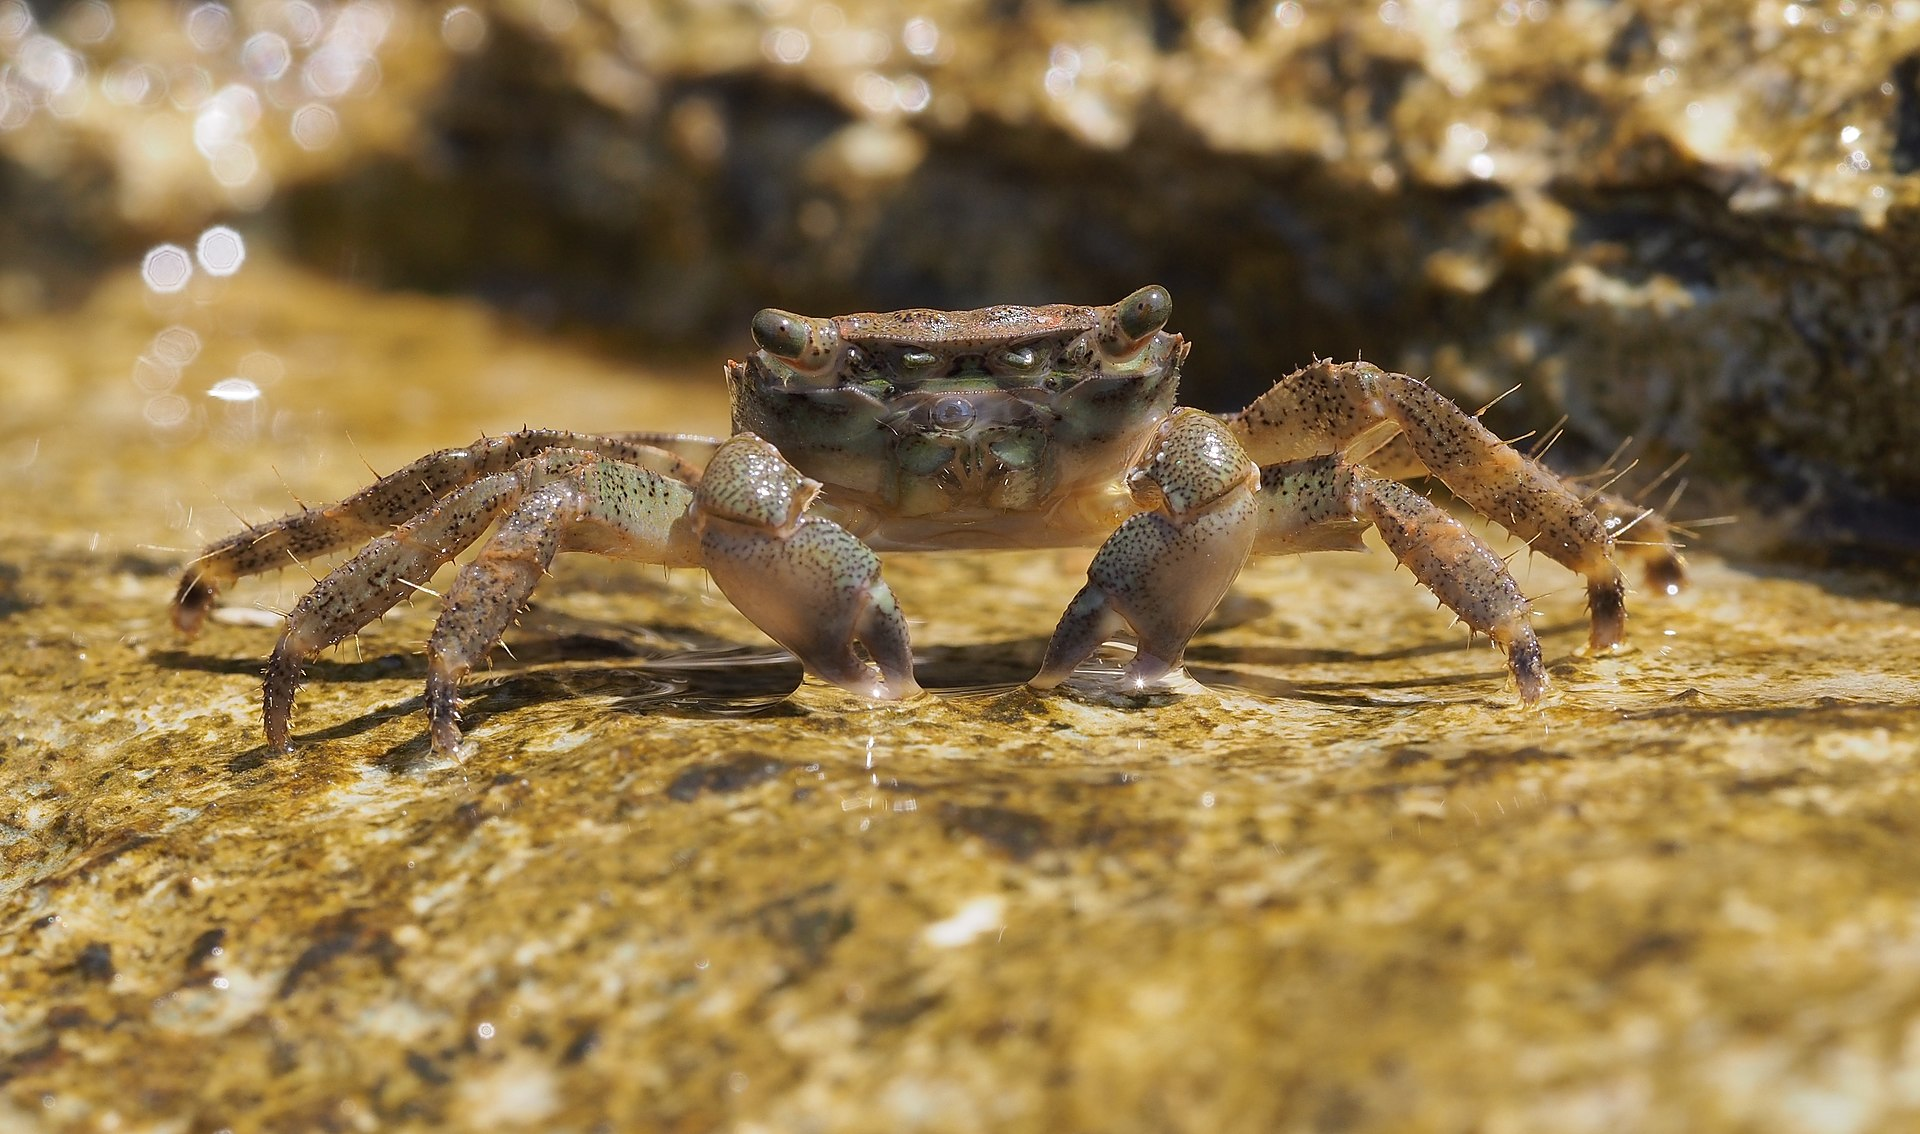 https://upload.wikimedia.org/wikipedia/commons/thumb/2/20/Crab_%28Pachygrapsus_marmoratus%29_on_Istrian_coast_%28Adriatic_sea%29.jpg/1920px-Crab_%28Pachygrapsus_marmoratus%29_on_Istrian_coast_%28Adriatic_sea%29.jpg